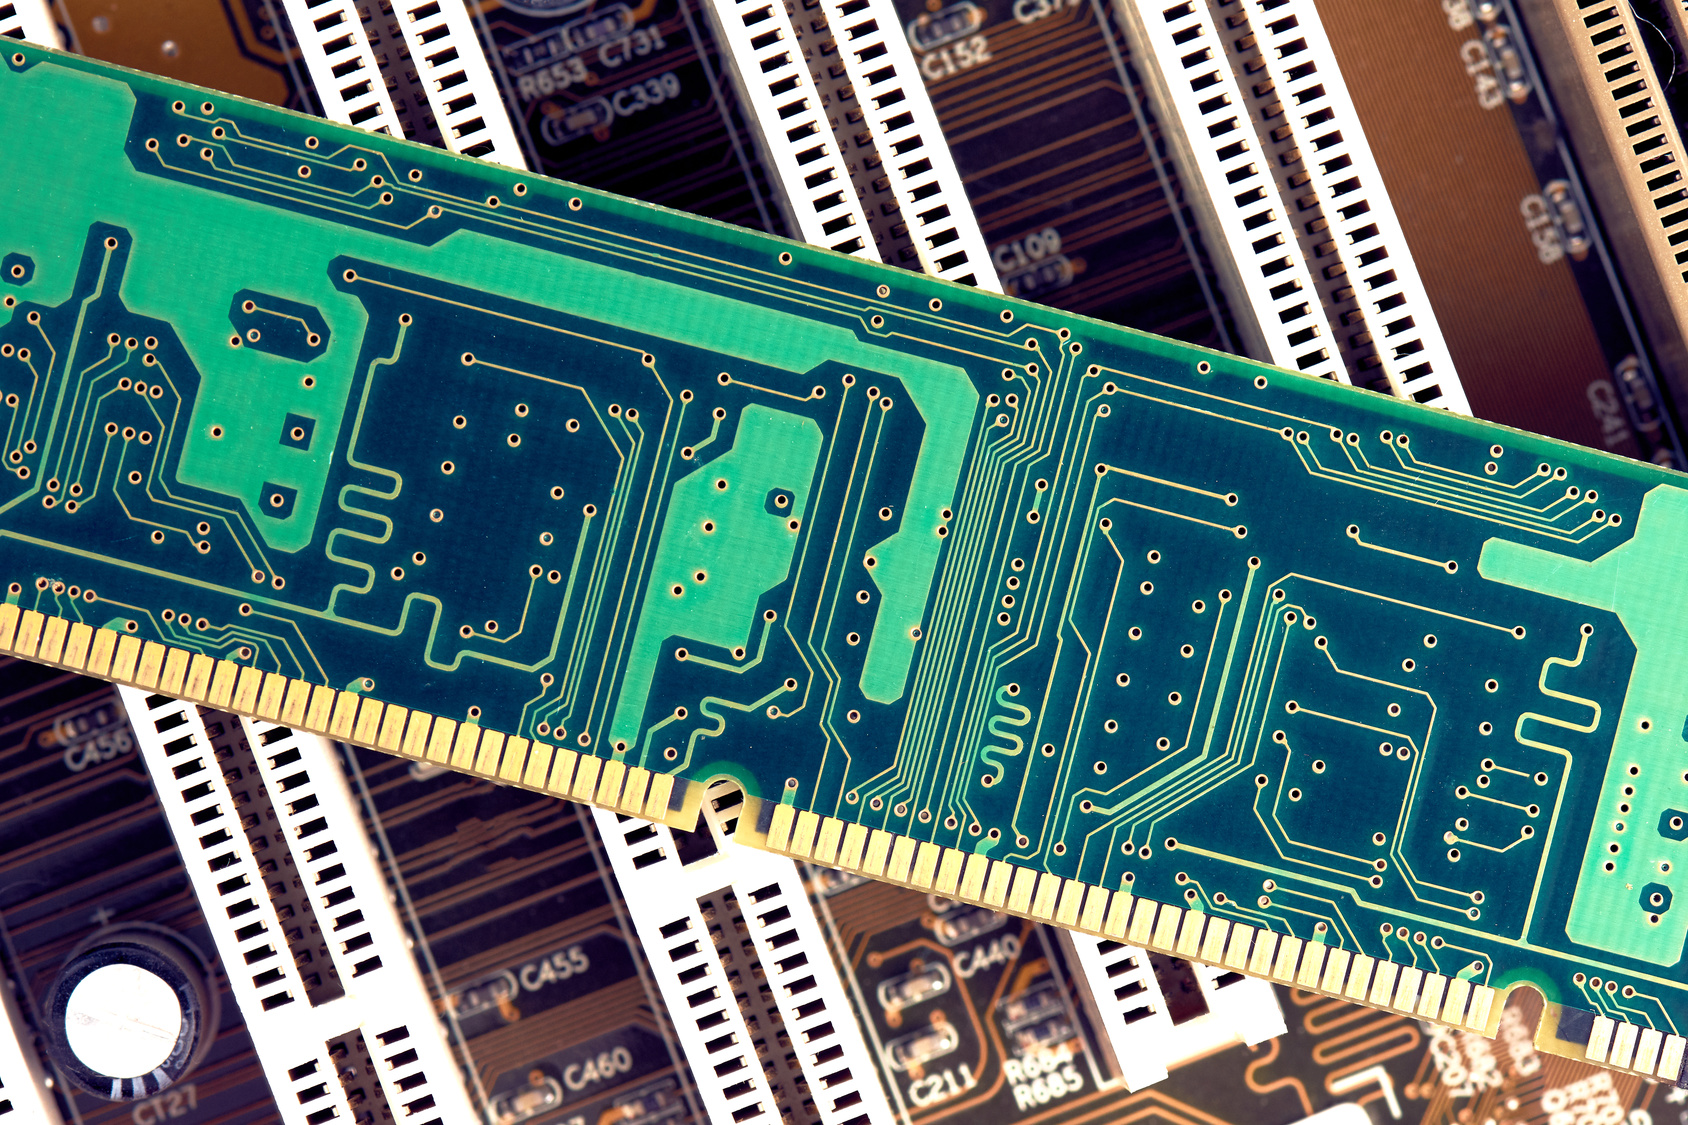 Https Cropped Circuits Banner 32 2011 06 High Res Jpeg Of A Circuit Board With Binary Codes As The Background Fotolia 163562917 Subscription Monthly M